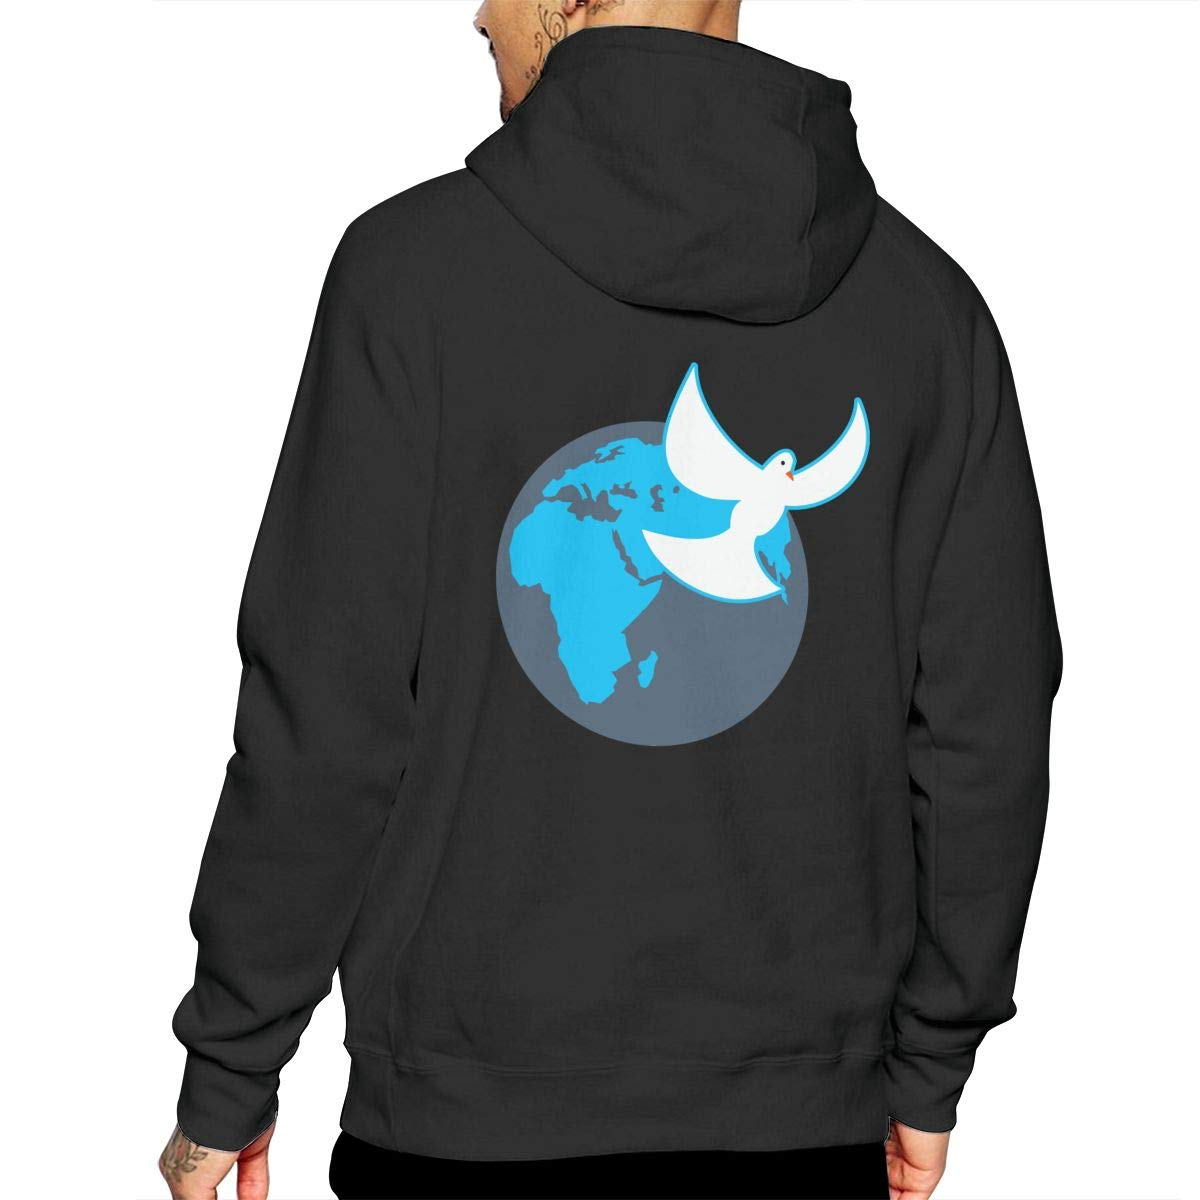 Men World Globe /& Dove Hooded Fleece Casual 100/% Cotton Sports Pullover with Pocket for Men